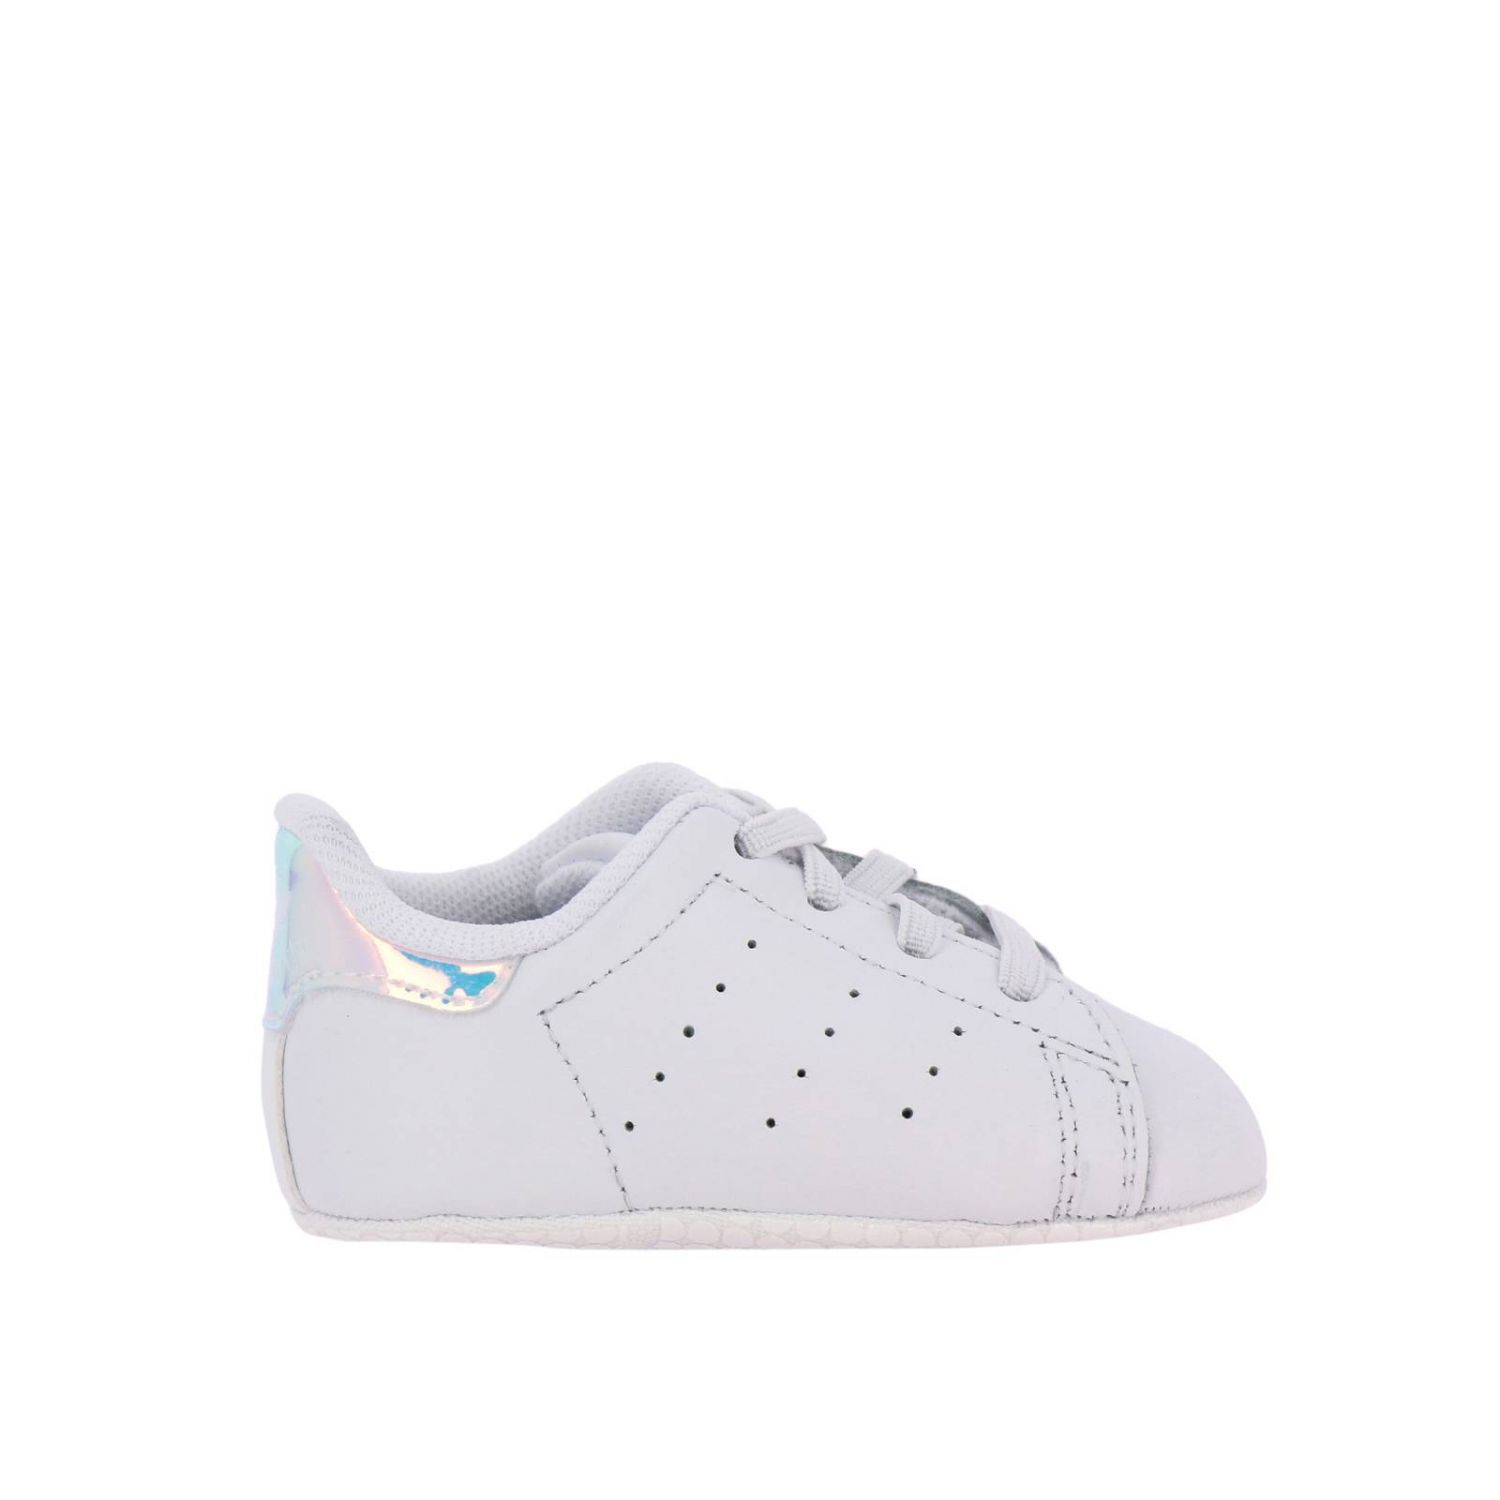 Shoes Adidas Originals: Stan Smith Crib Adidas Originals Sneakers in leather with mirrored heel white 1